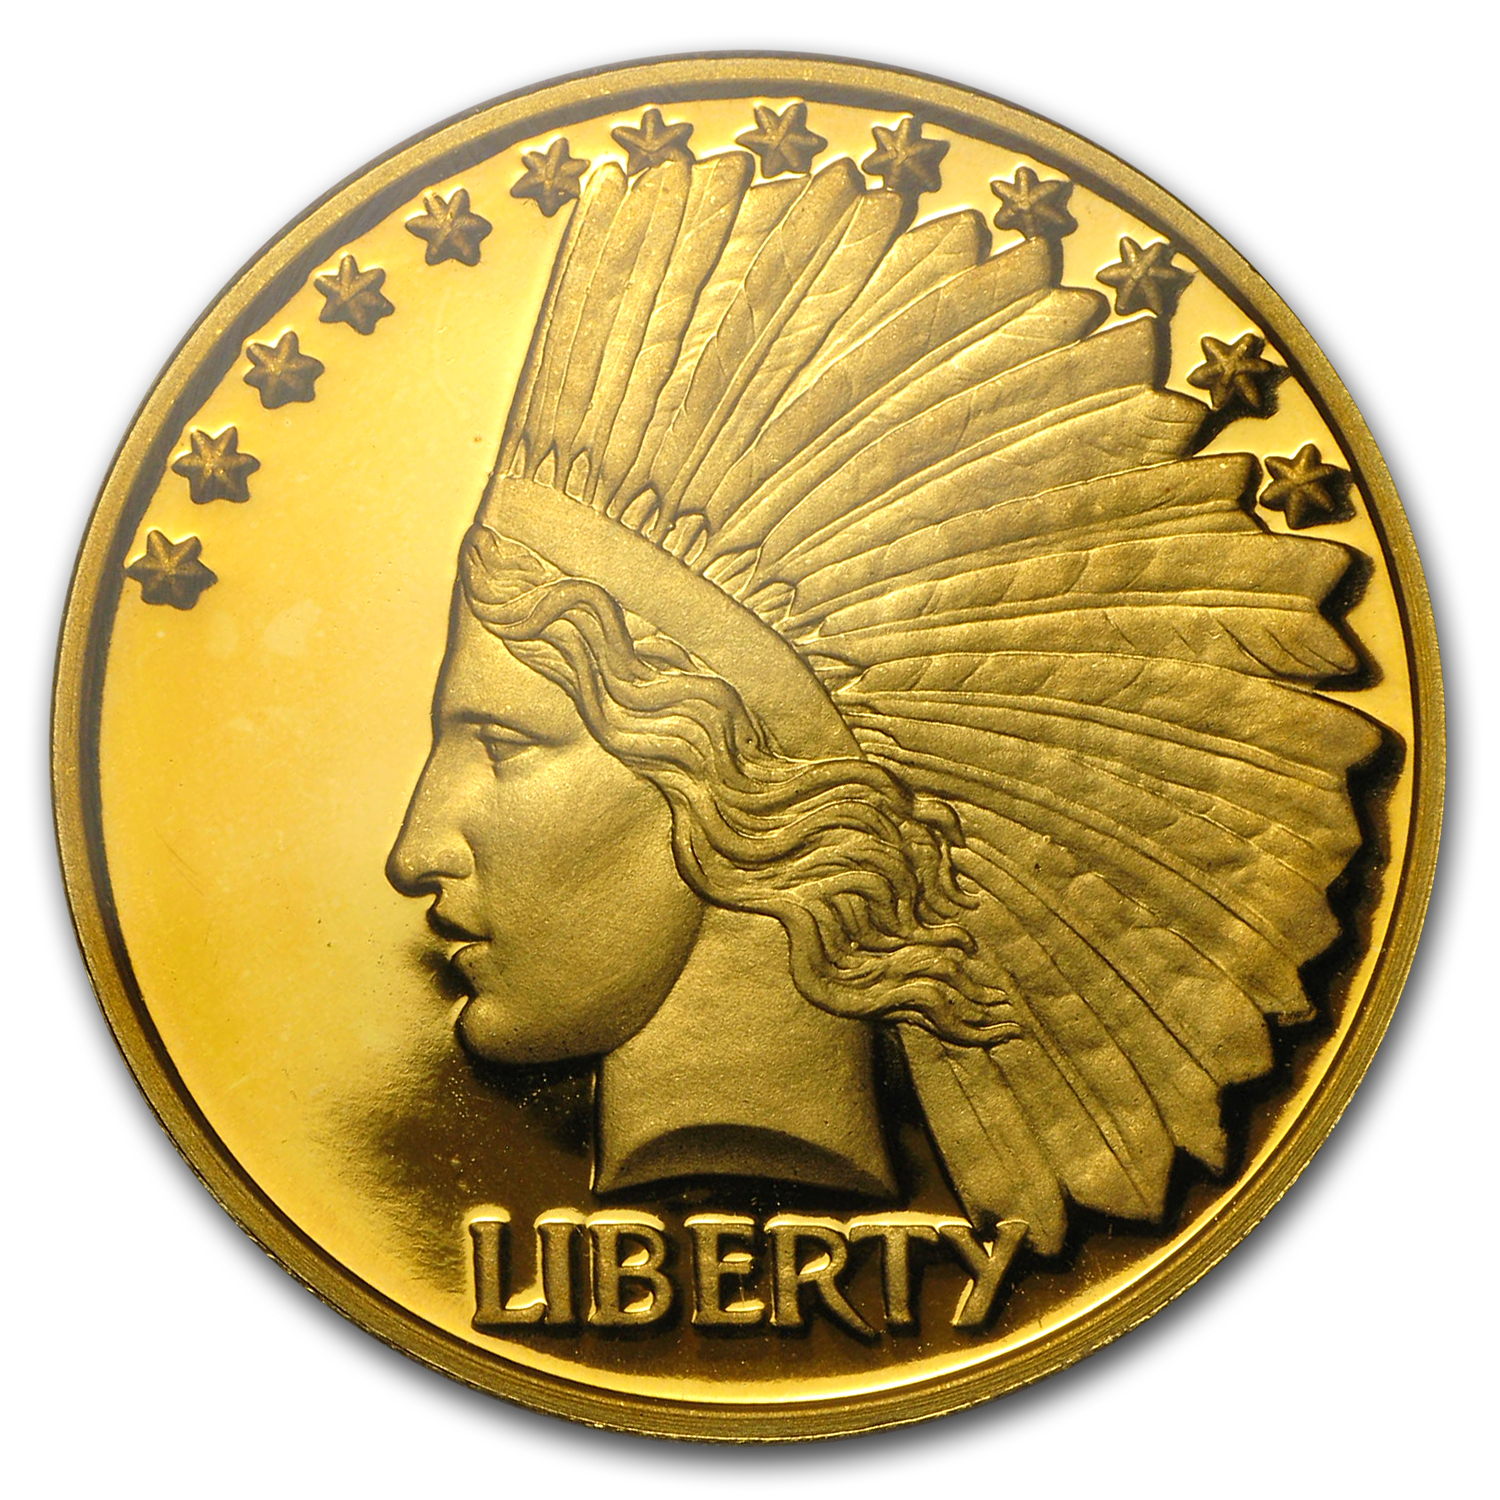 2000 Liberia 1 oz Proof Gold 100 Dollars PF-68 PCGS (Type-1)